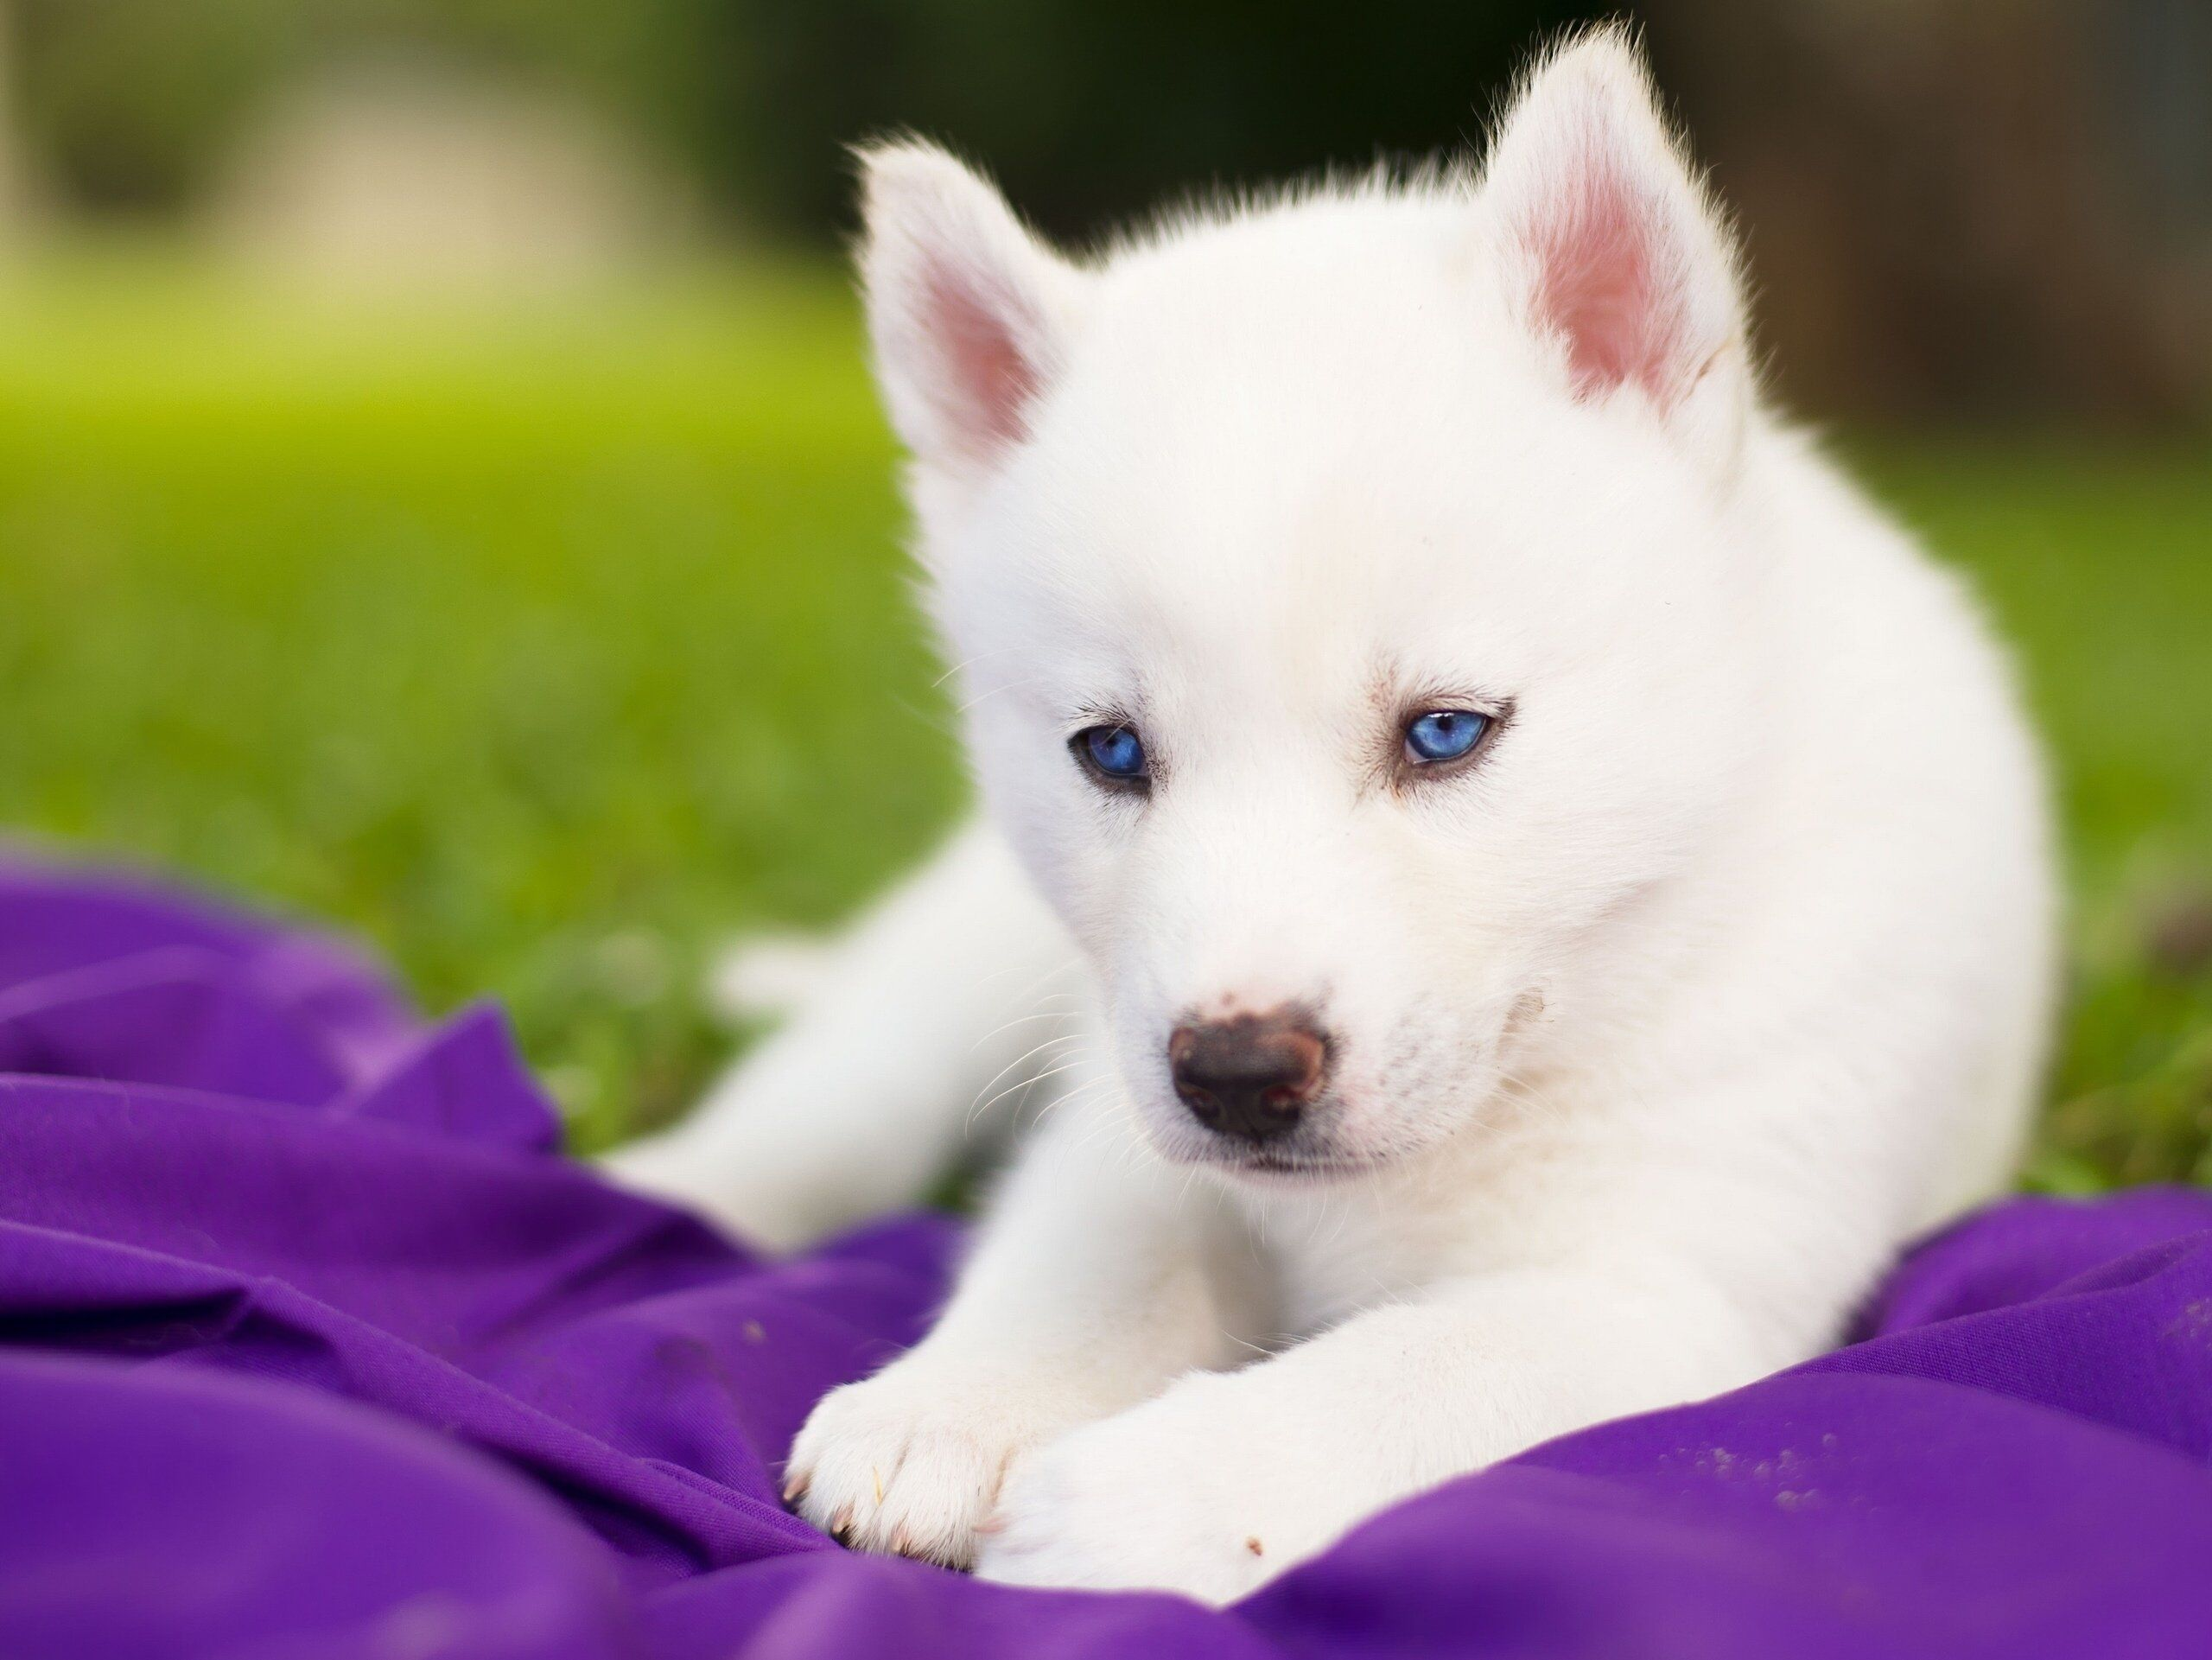 Most Inspiring Puppy Blue Eye Adorable Dog - bea13cc382a79770565fca5ea7598991  Trends_471873  .jpg